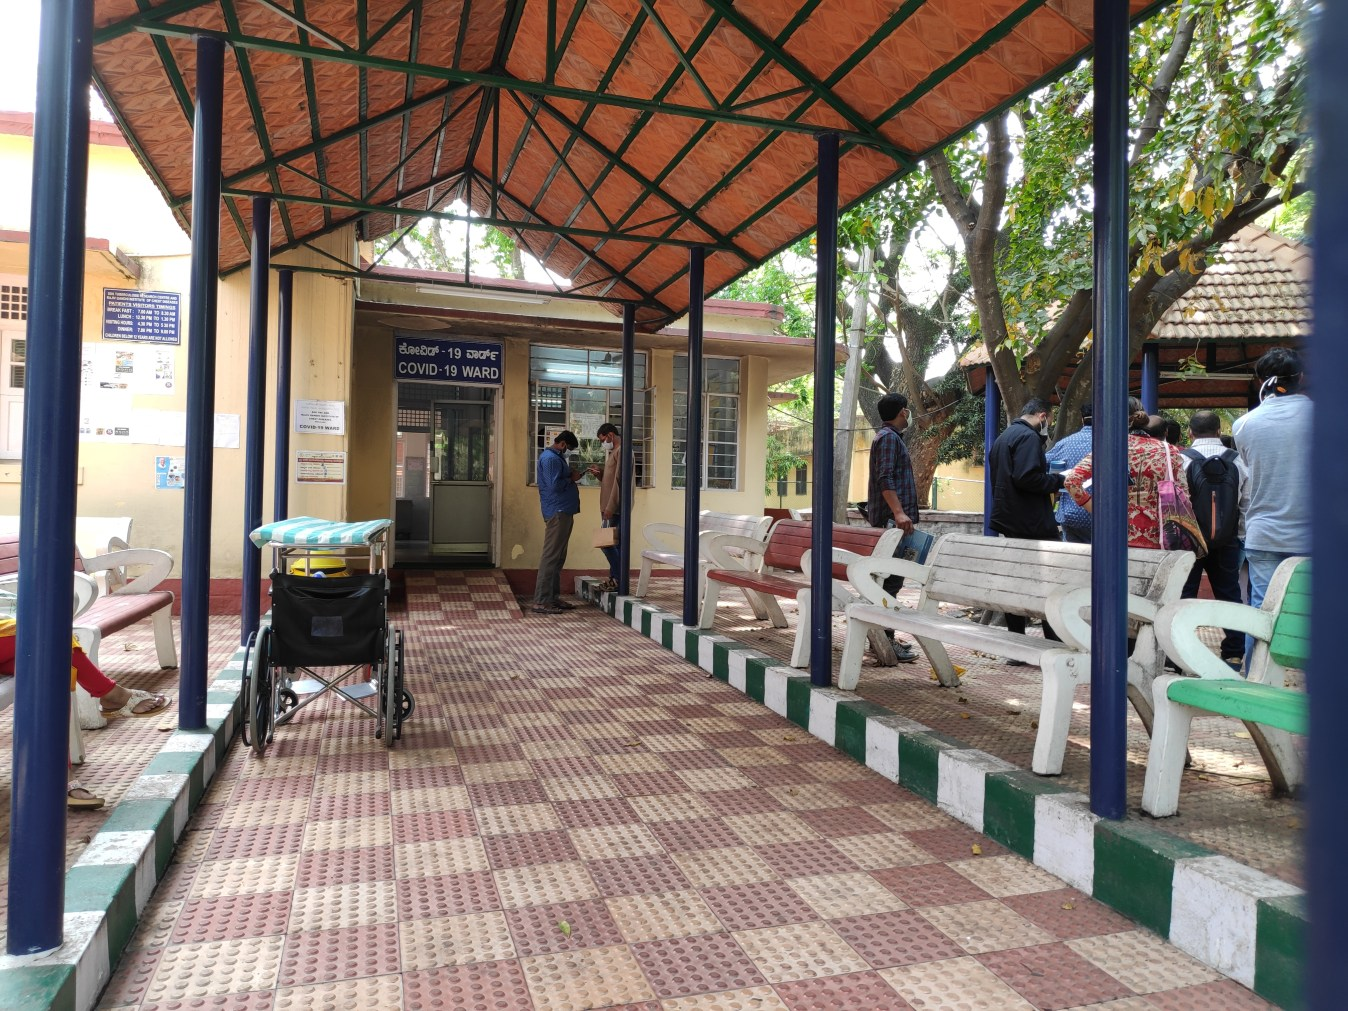 142157361 - bengaluru / bangalore, india - march 4 2020: a hospital ward for testing covid-19 or coronavirus setup in bangalore, india. the infectious disease has over 93,000 confirmed cases worldwide, with india has reporting 28 confirmed coronavirus cases. COVID-19 case count concept. Image credit: Ajay Bhaskar / 123rf. Critical COVID-19 concept. COVID-19 tests concept.